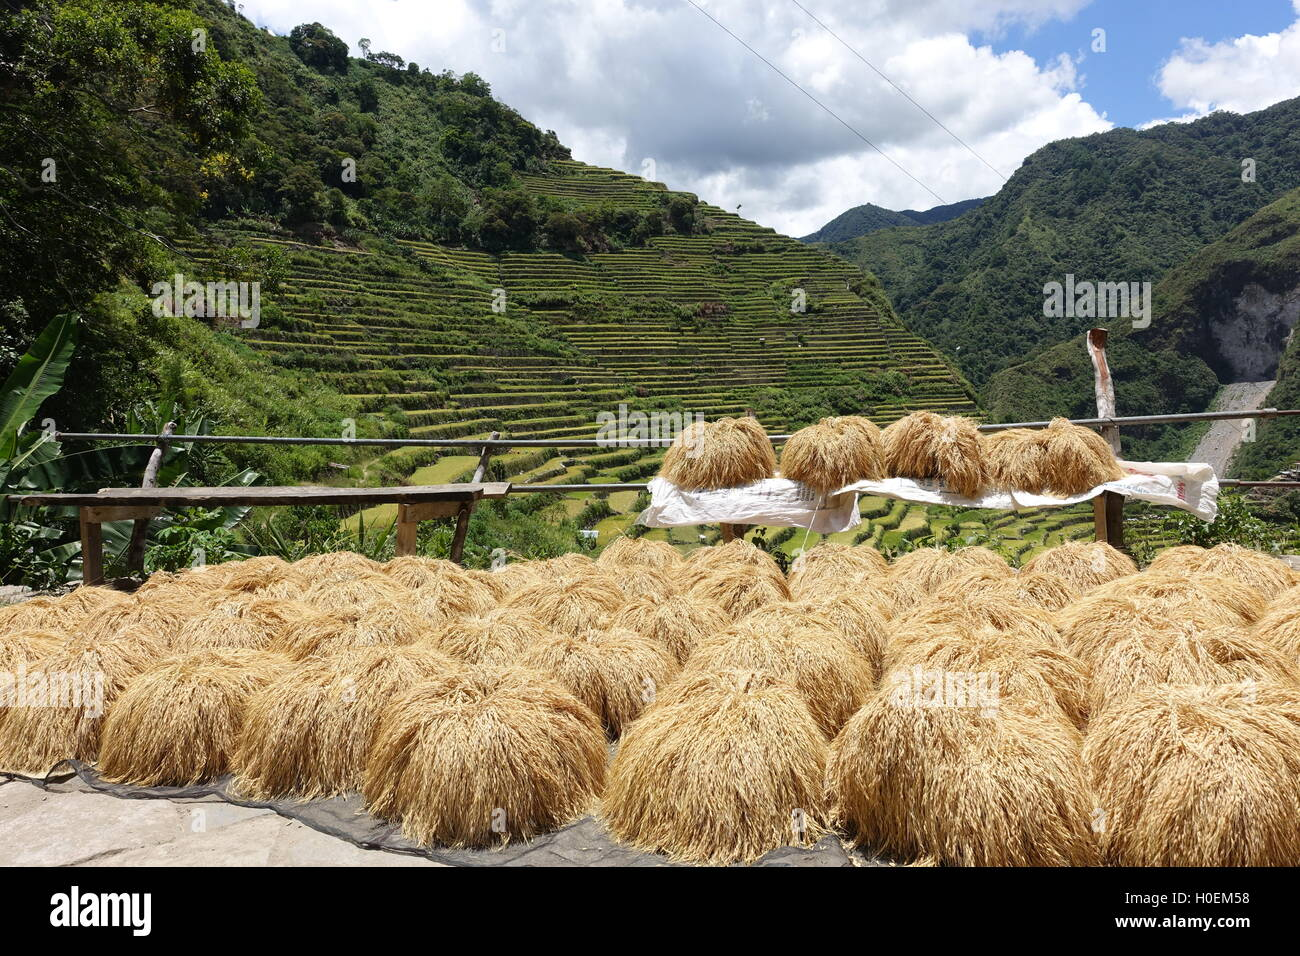 Golden rice bundles sun drying with Banaue and Baguio Rice Terraces and mountains in the background - Stock Image